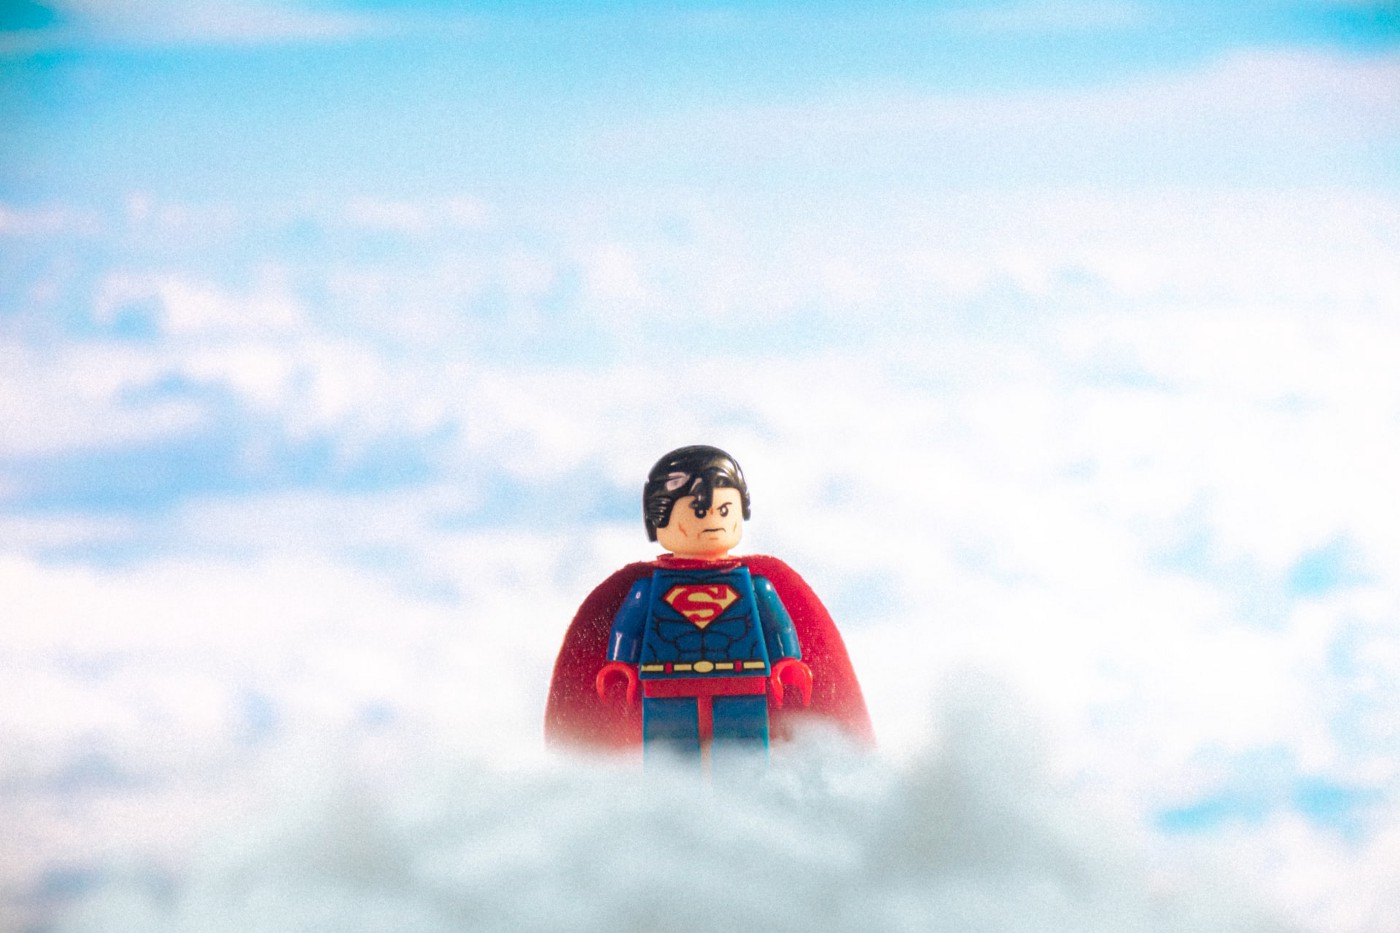 A lego Superman surrounded by white clouds, as if he's hanging up there watching over the earth.